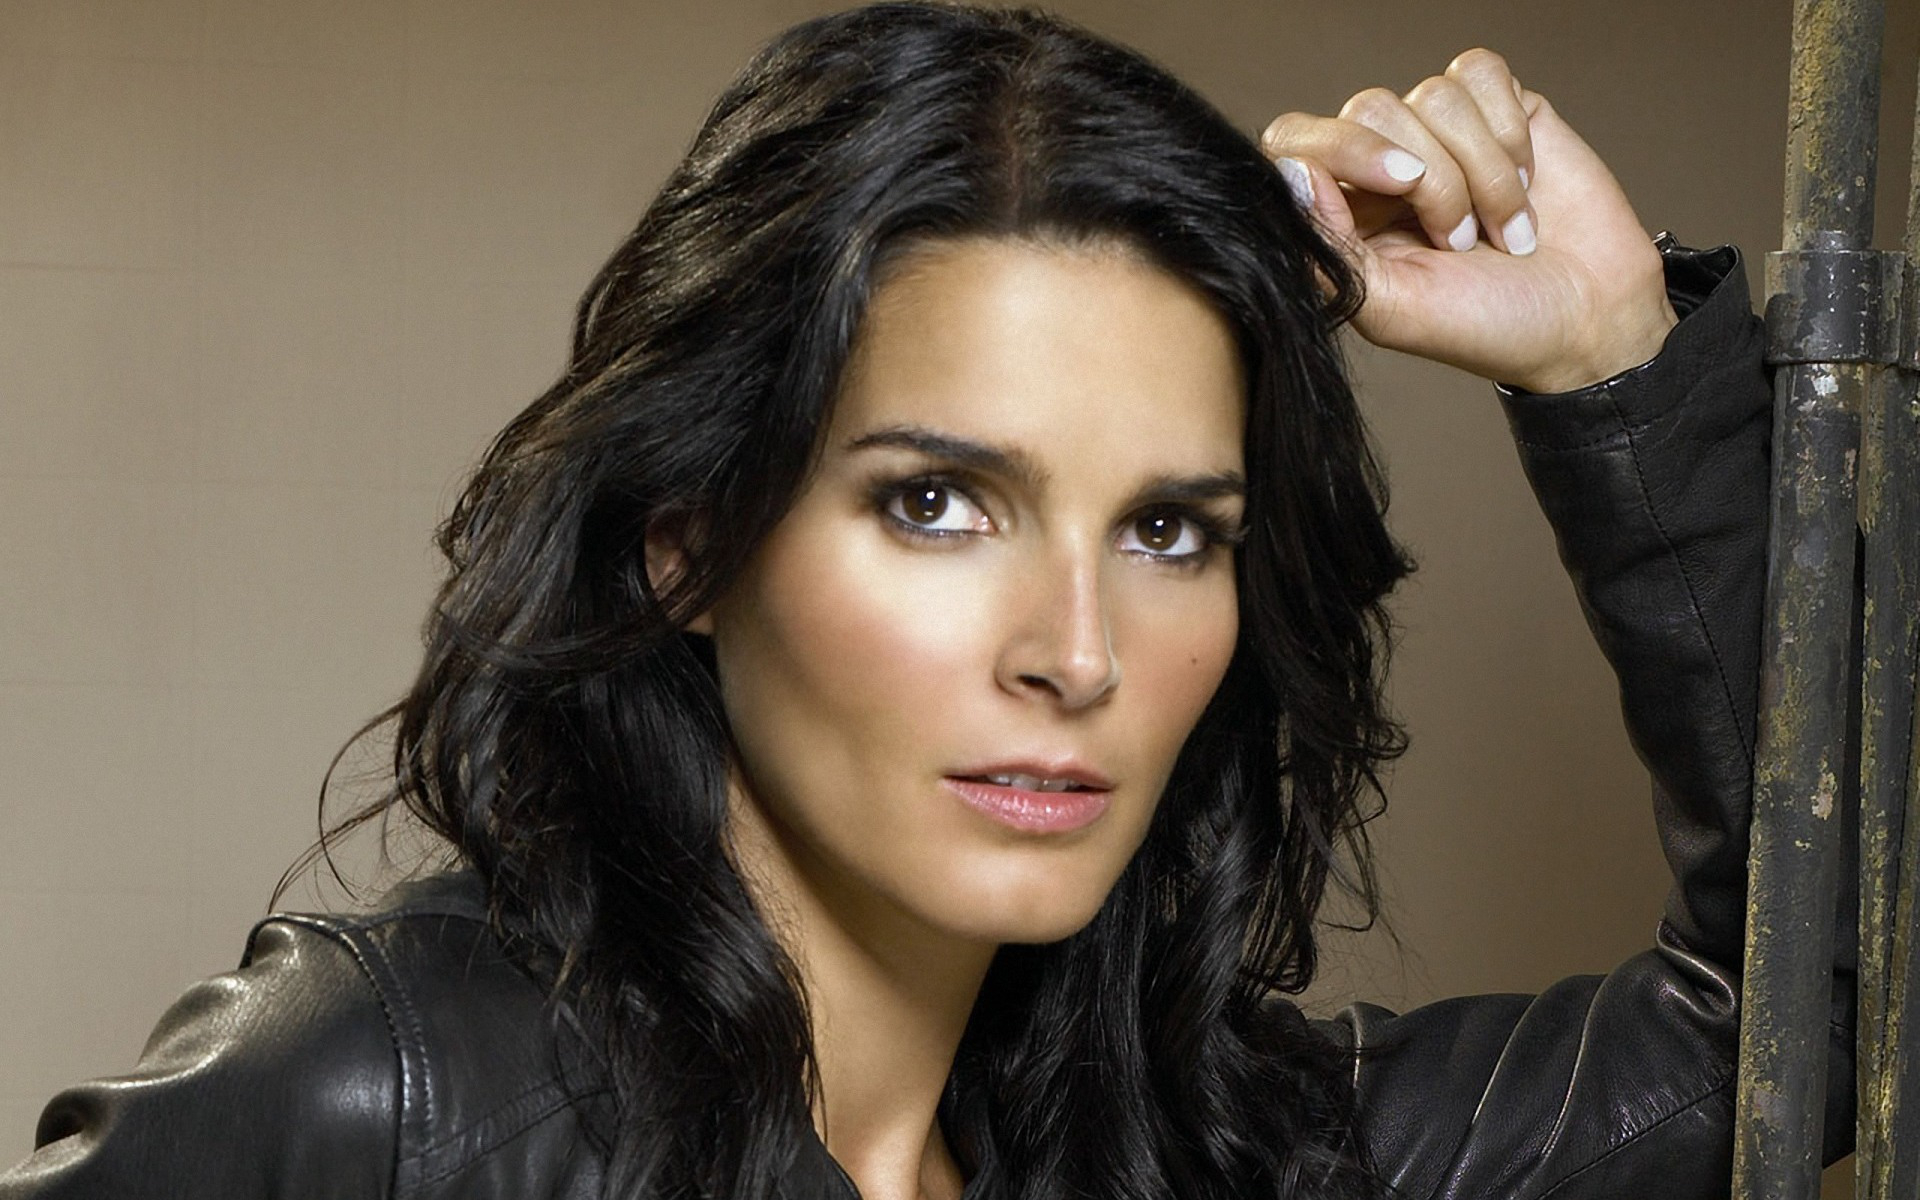 1920x1200 - Angie Harmon Wallpapers 17